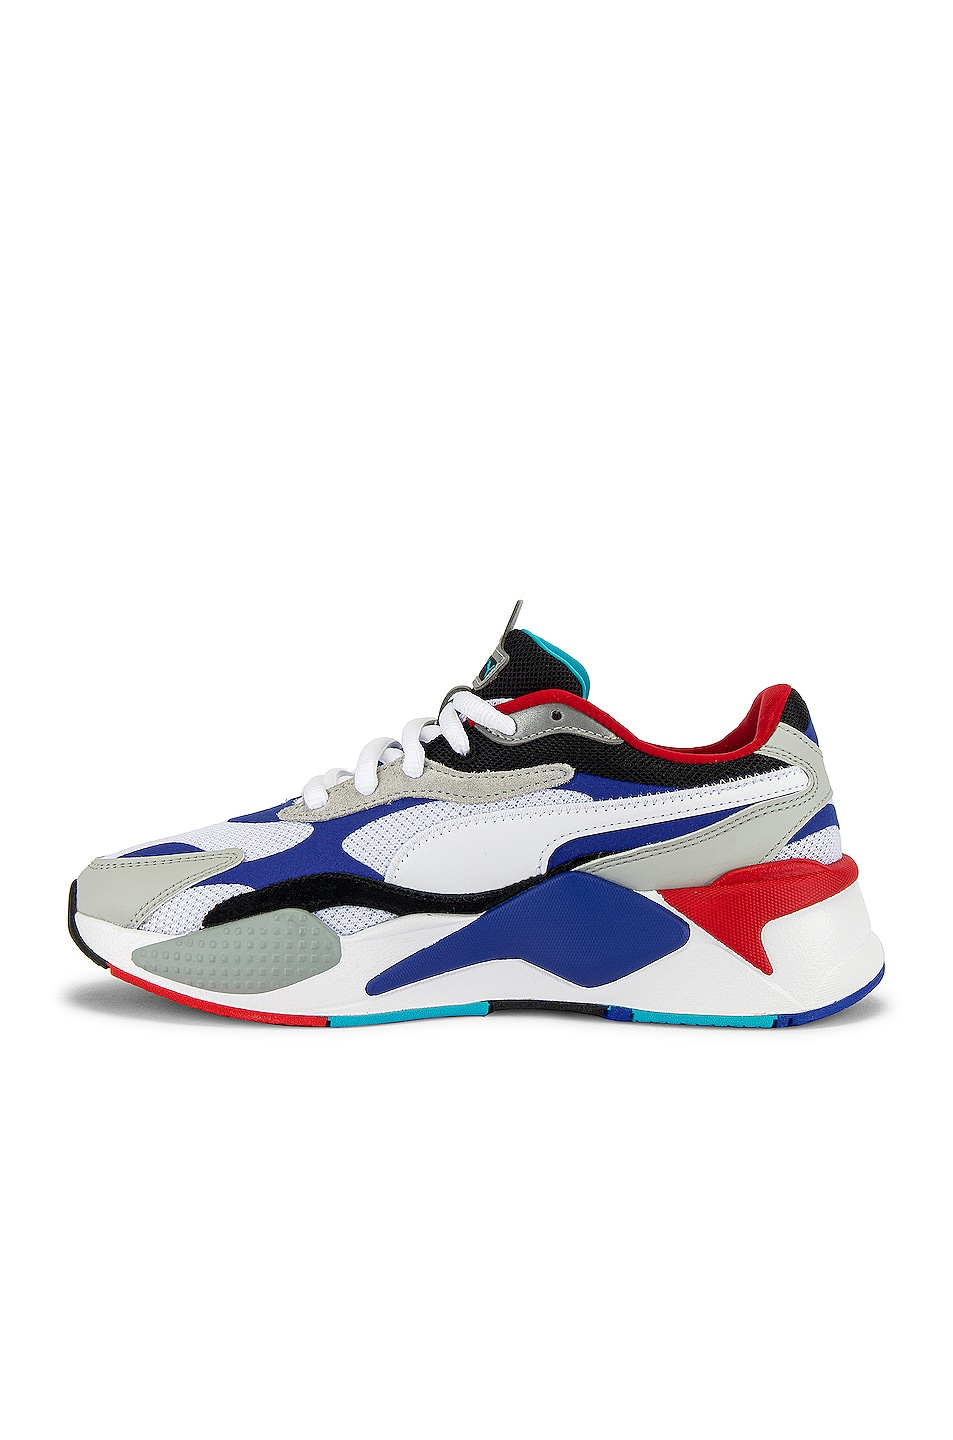 Image 5 of Puma Select RSX Cube RS-X3 Puzzle in Puma White & Dazzling Blue